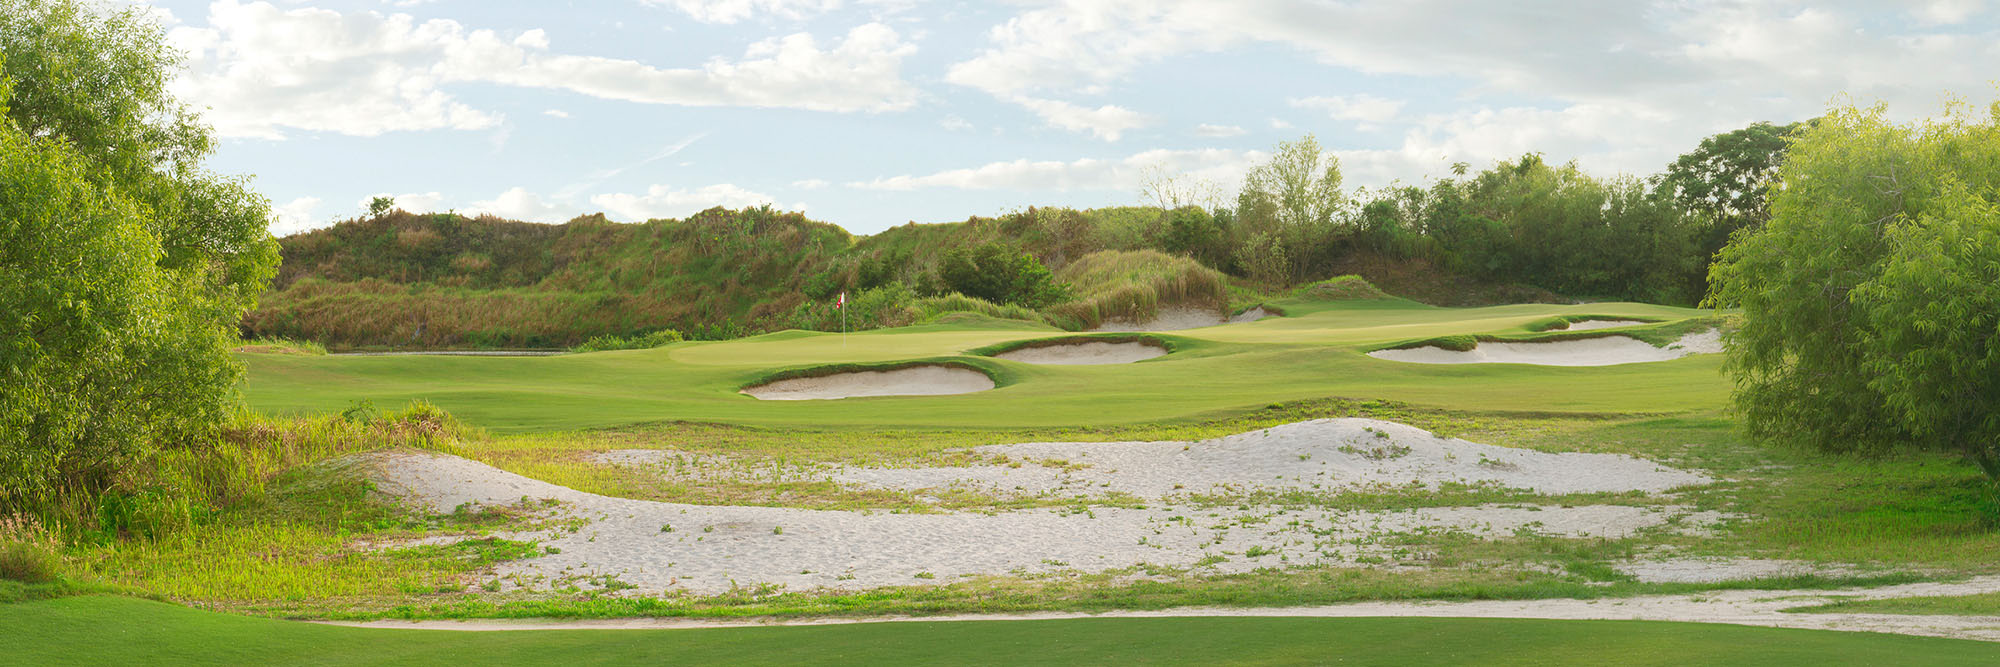 Golf Course Image - Streamsong Red No. 8